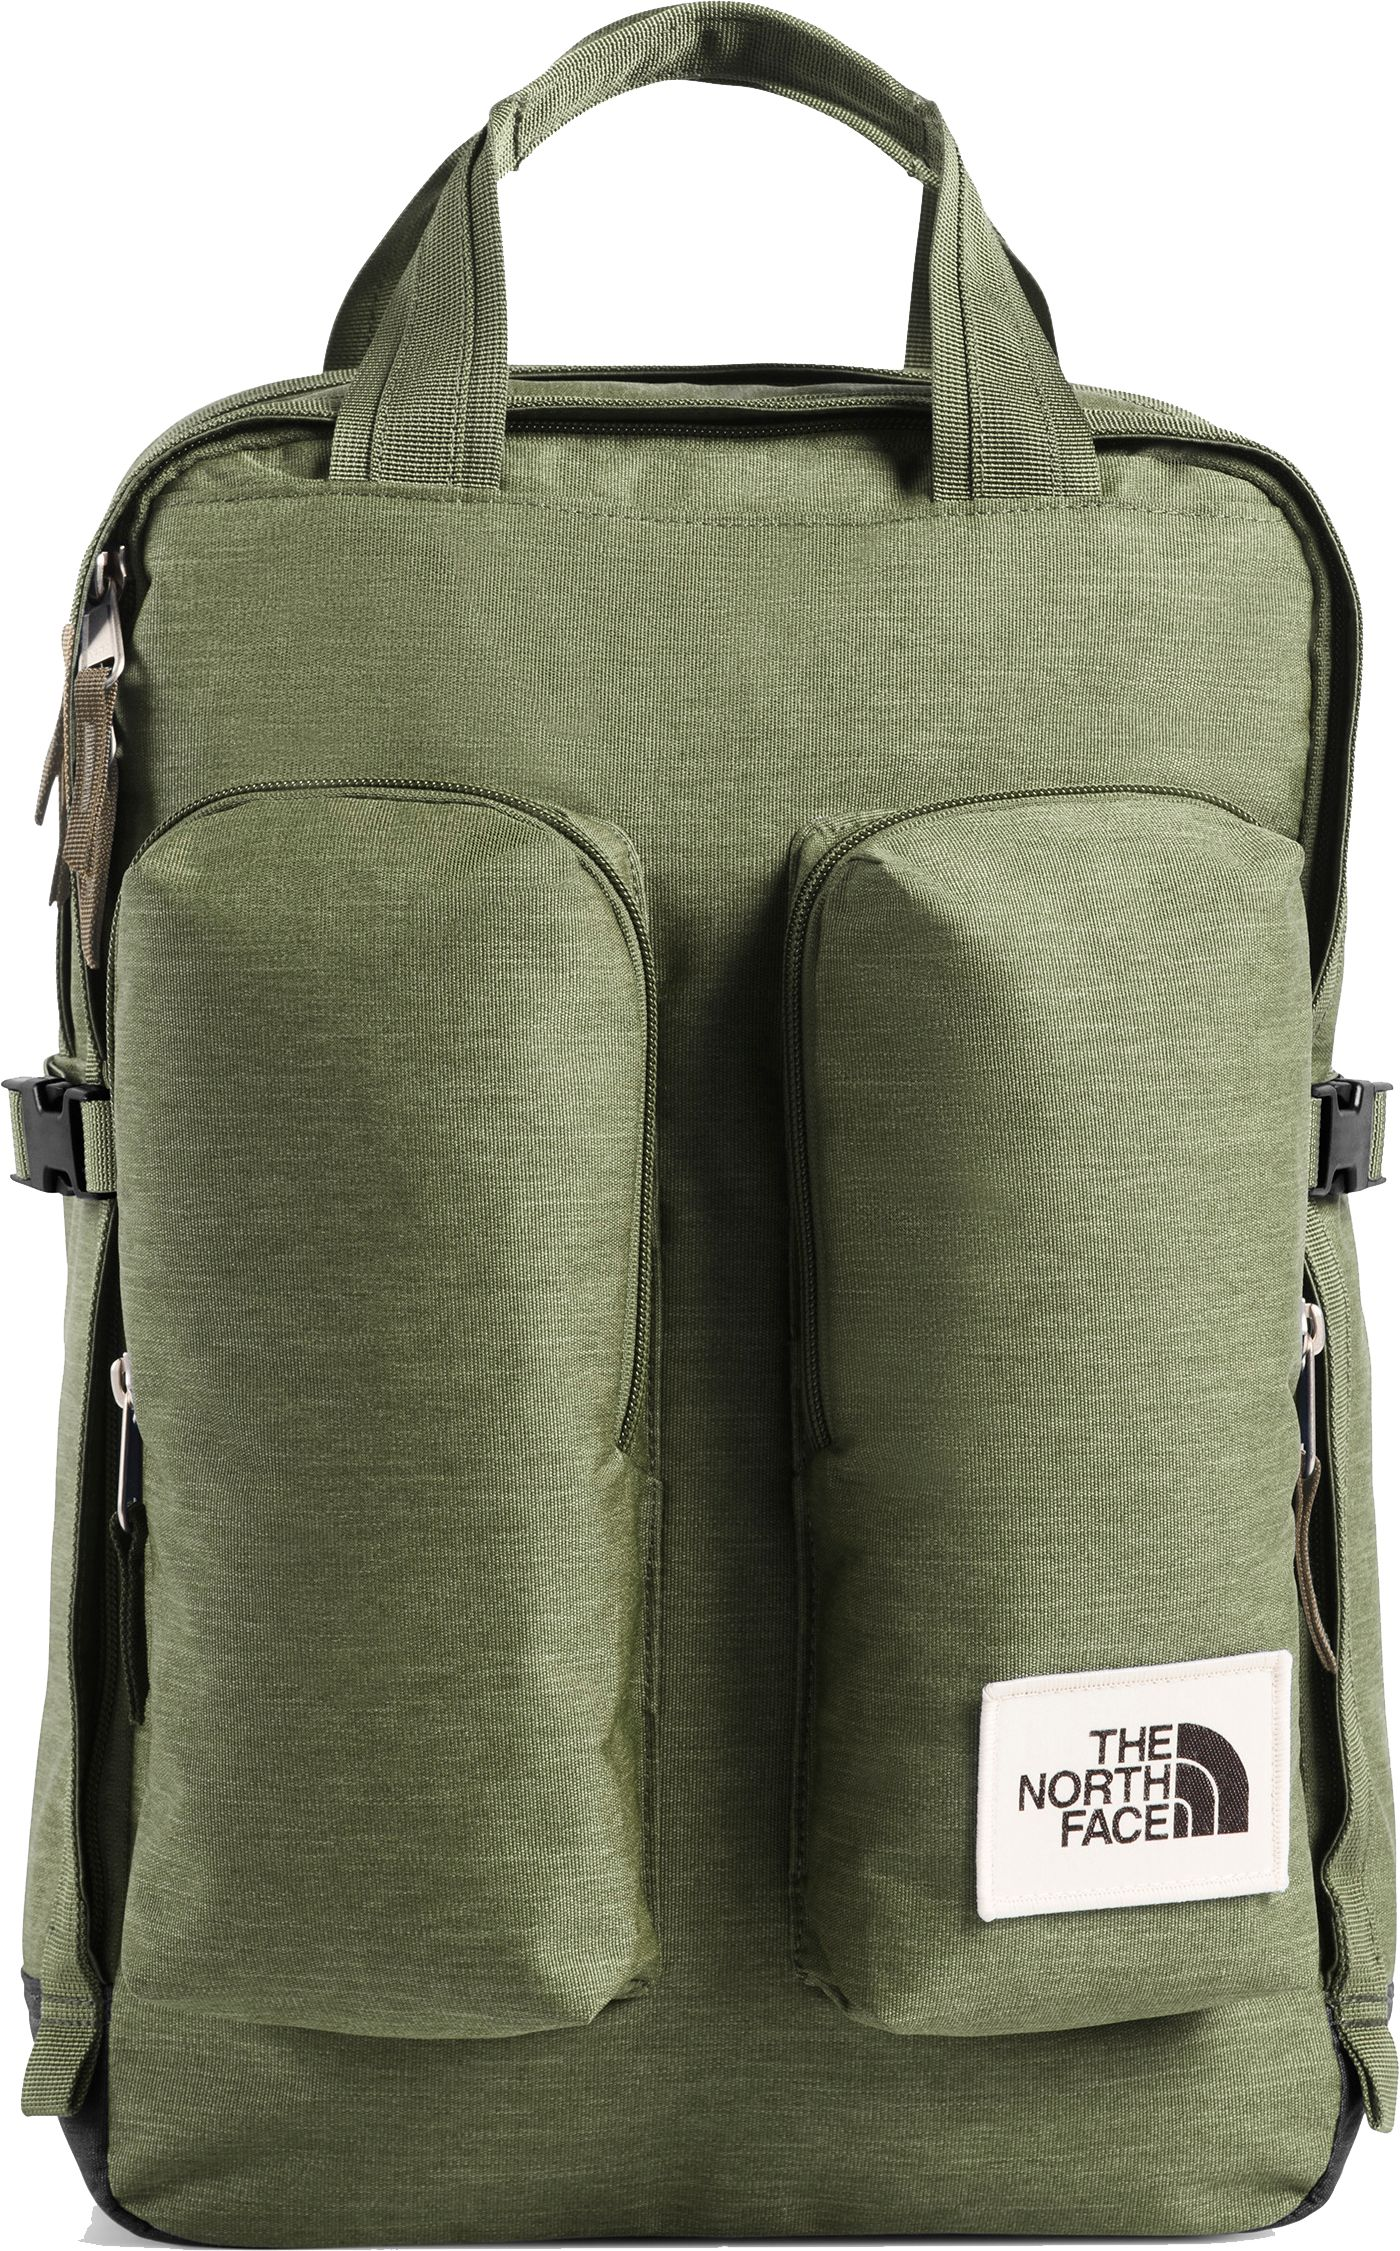 The North Face Mini Crevasse Back Pack